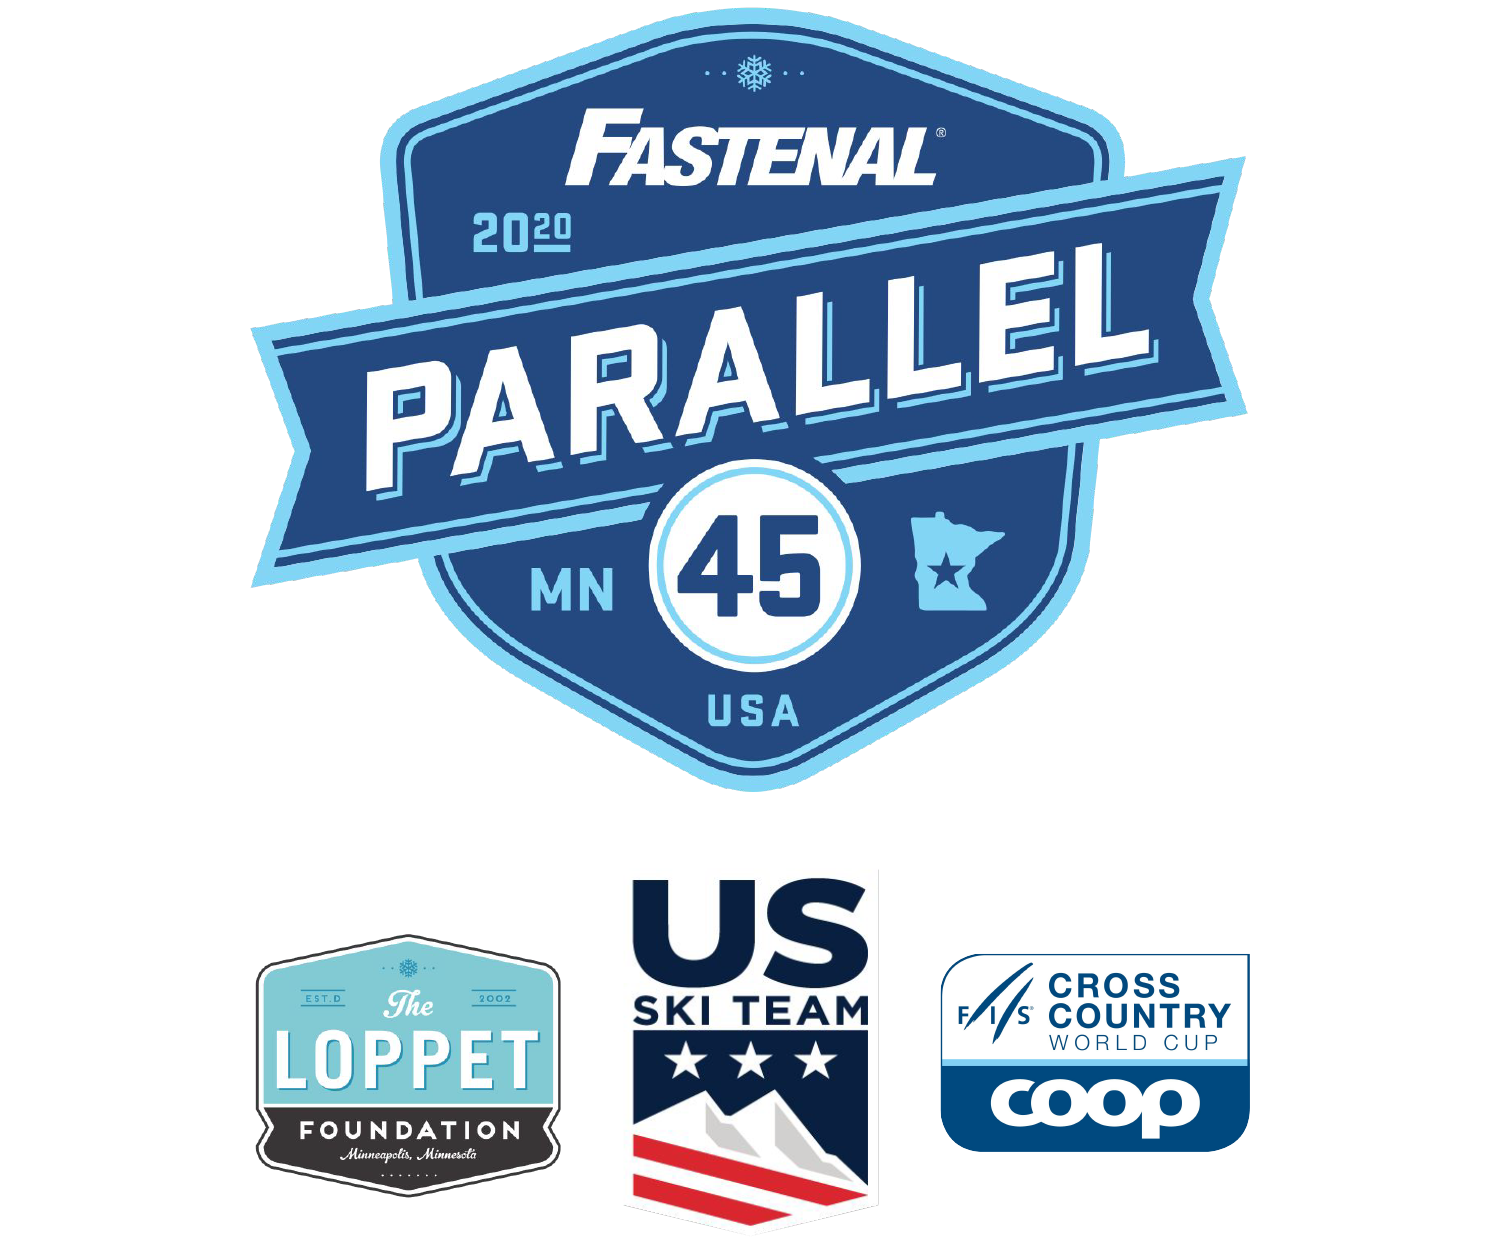 Minneapolis Events March 2020.Fastenal Parallel 45 The Loppet Foundation